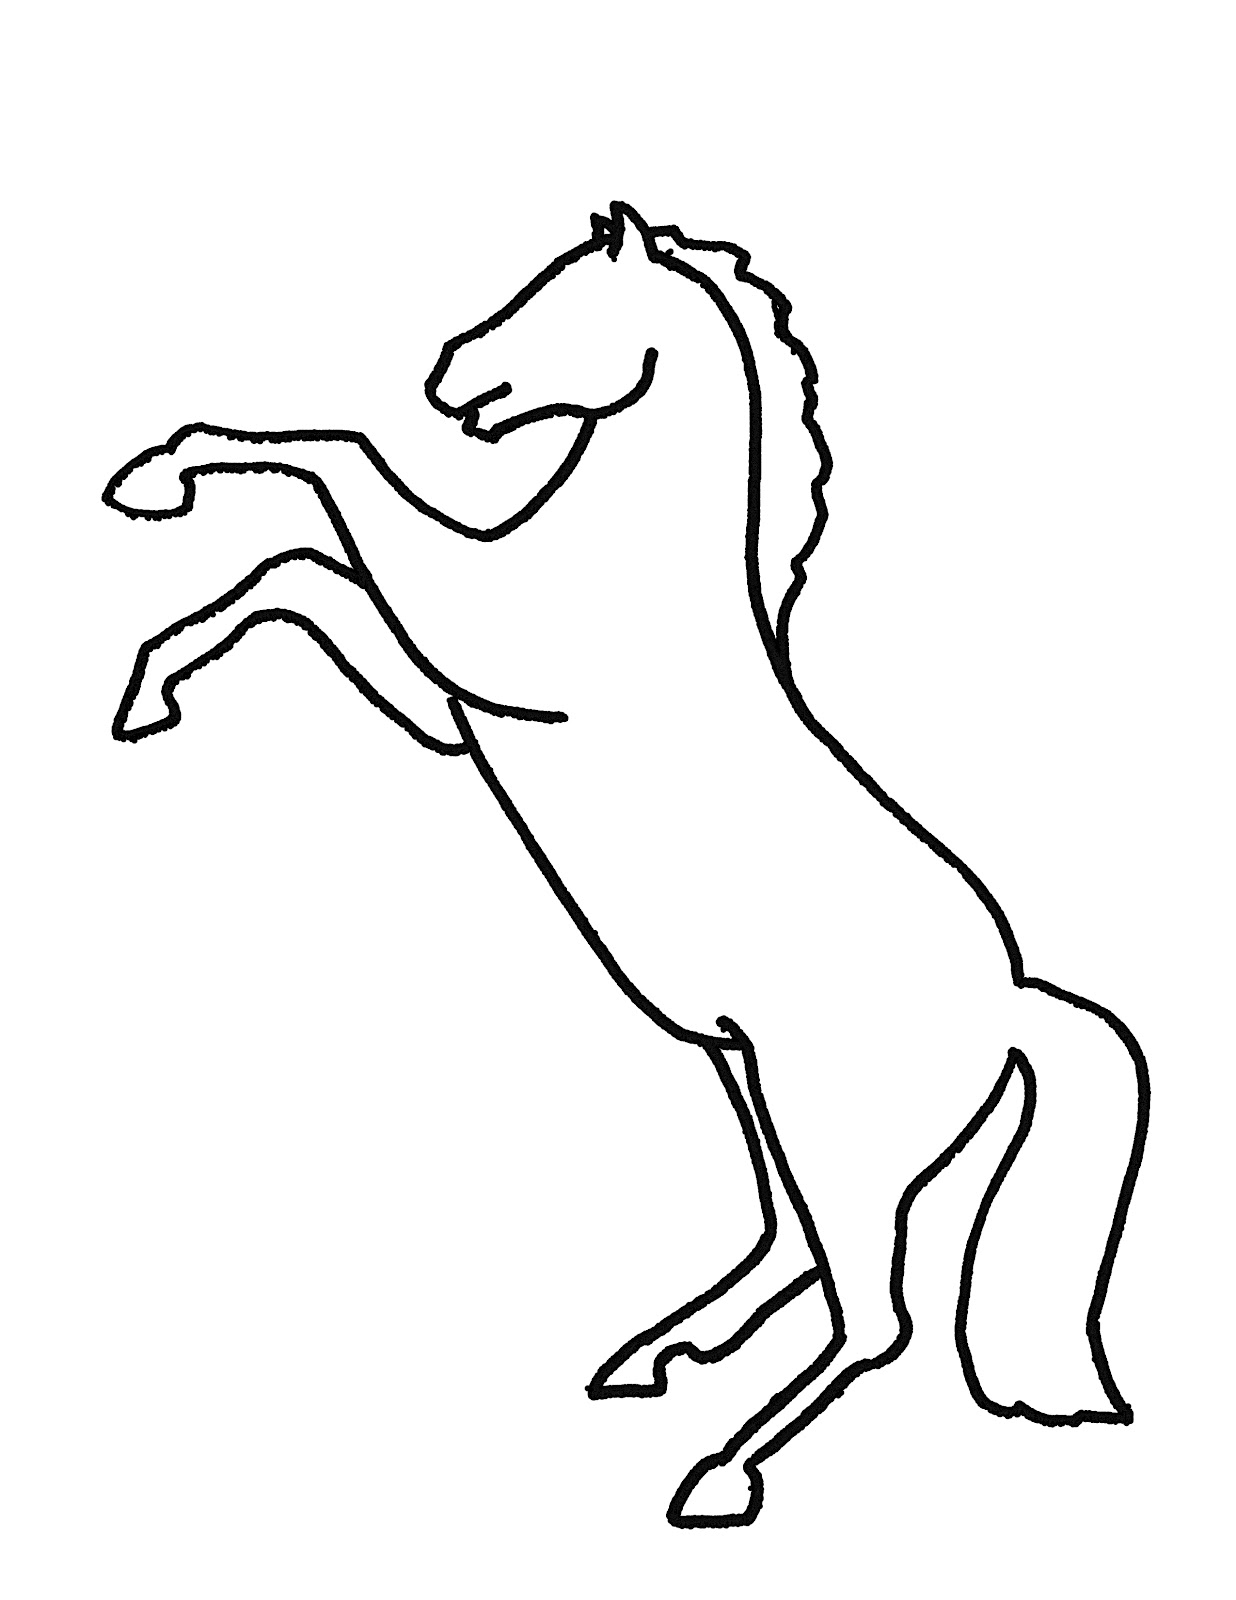 1236x1600 Brilliant Ideas Of Picture Of A Running Horse Free Clip Art Best